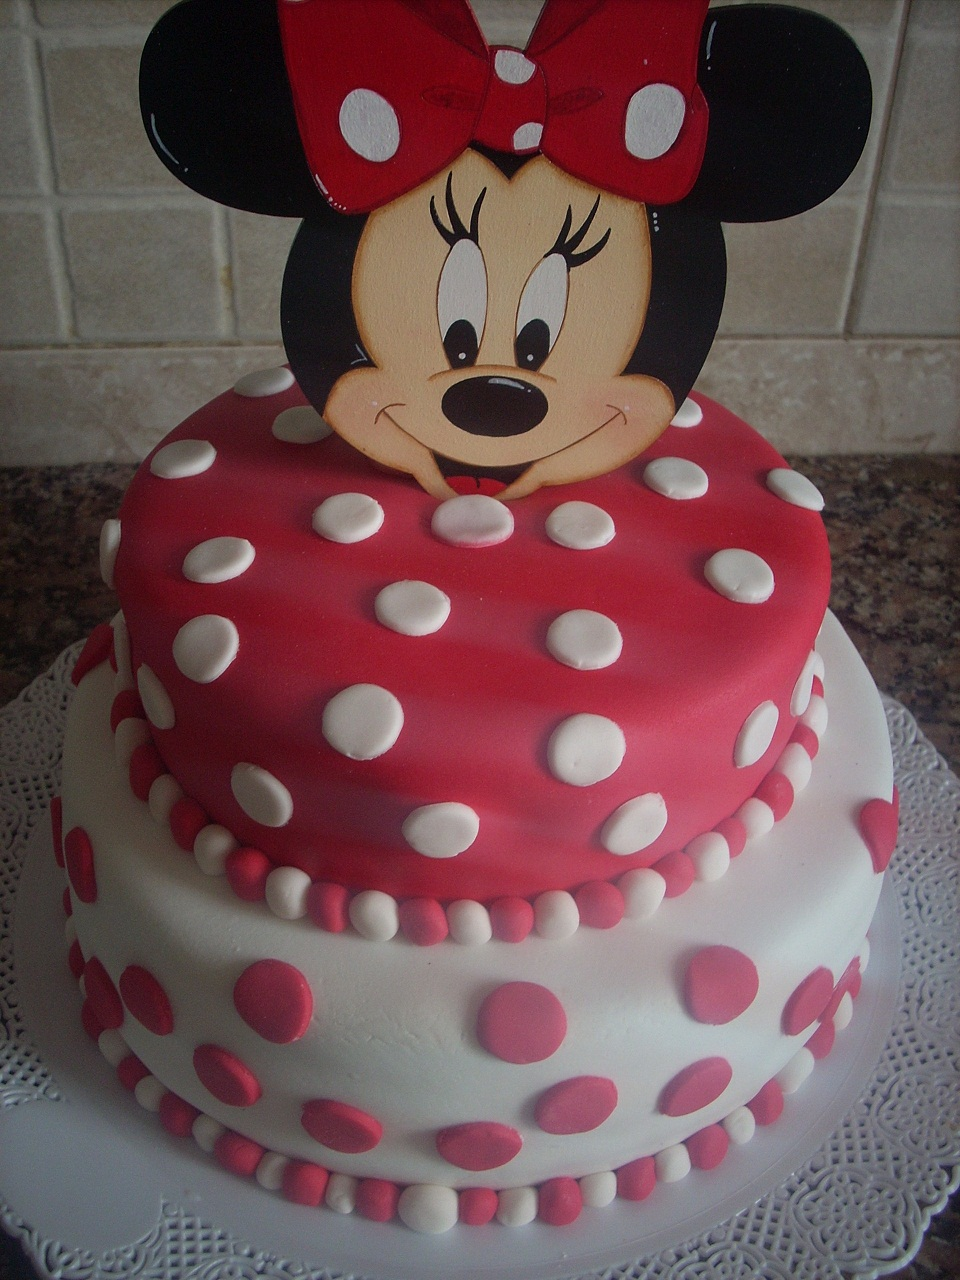 Torta De Bizcocho De Chocolate Minnie Mouse